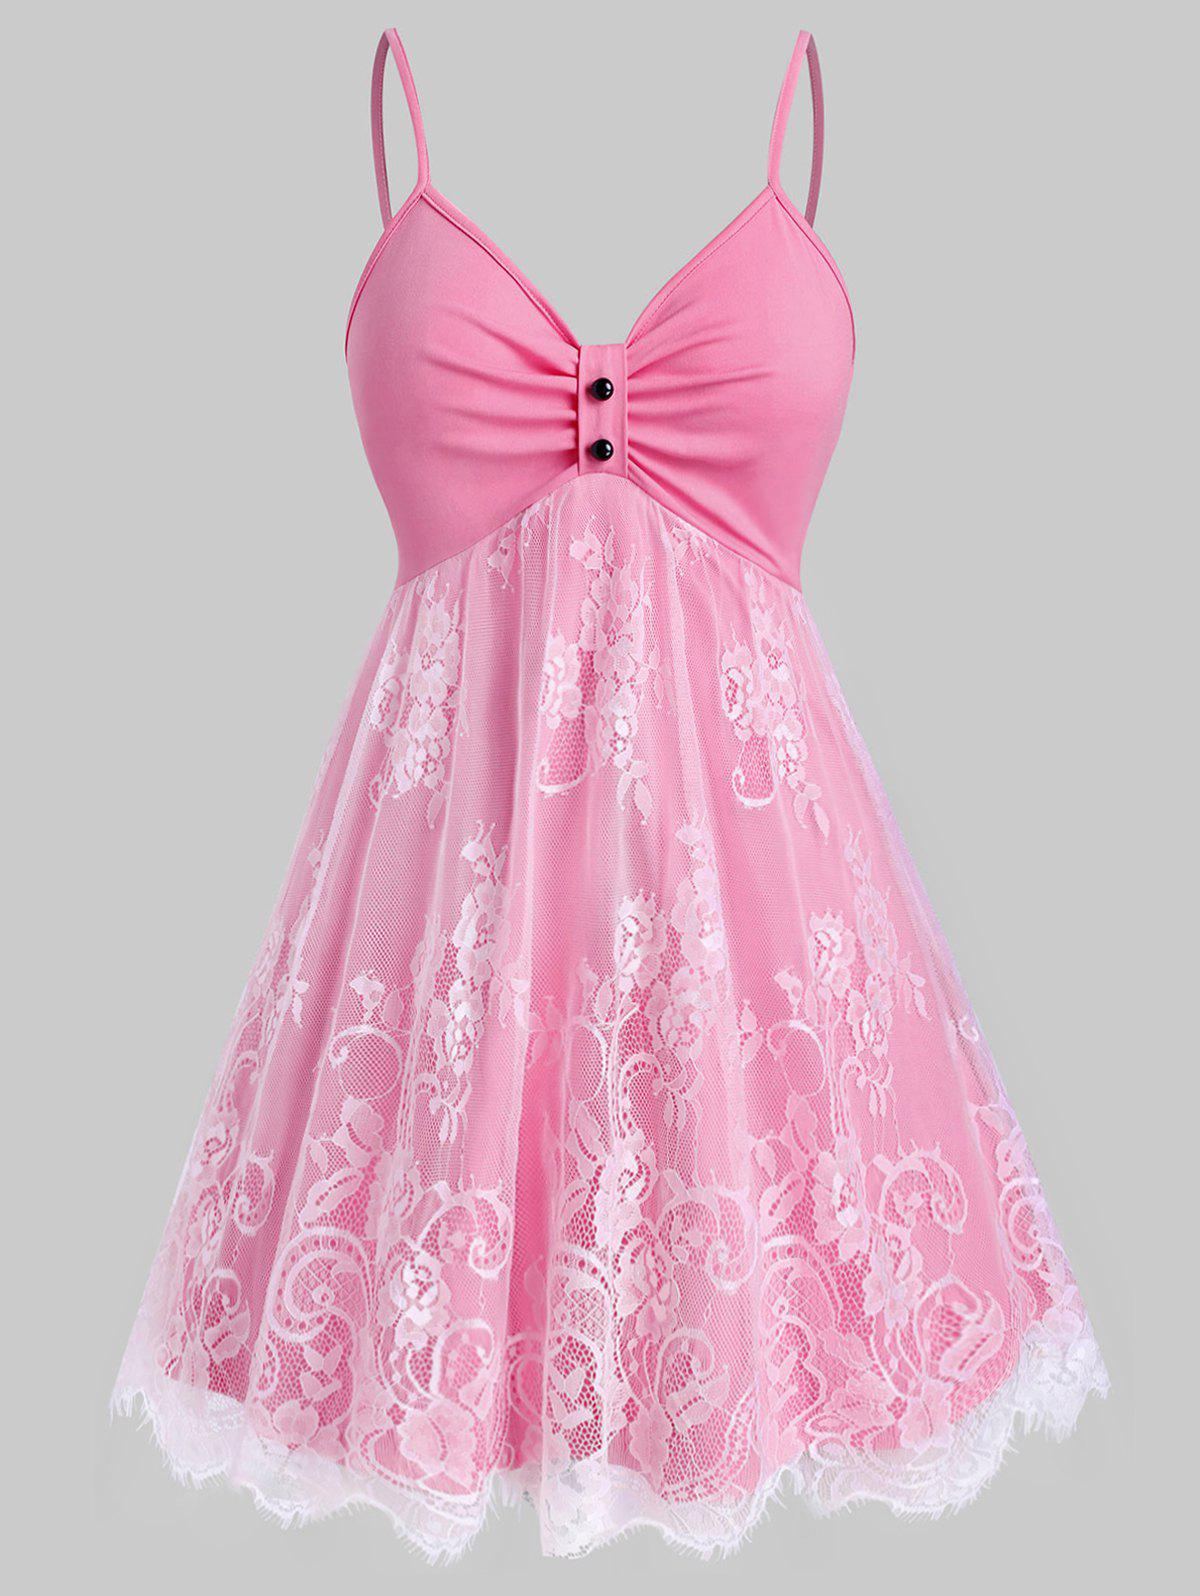 Plus Size Lace Overlay Fit and Flare Dress - LIGHT PINK 3X